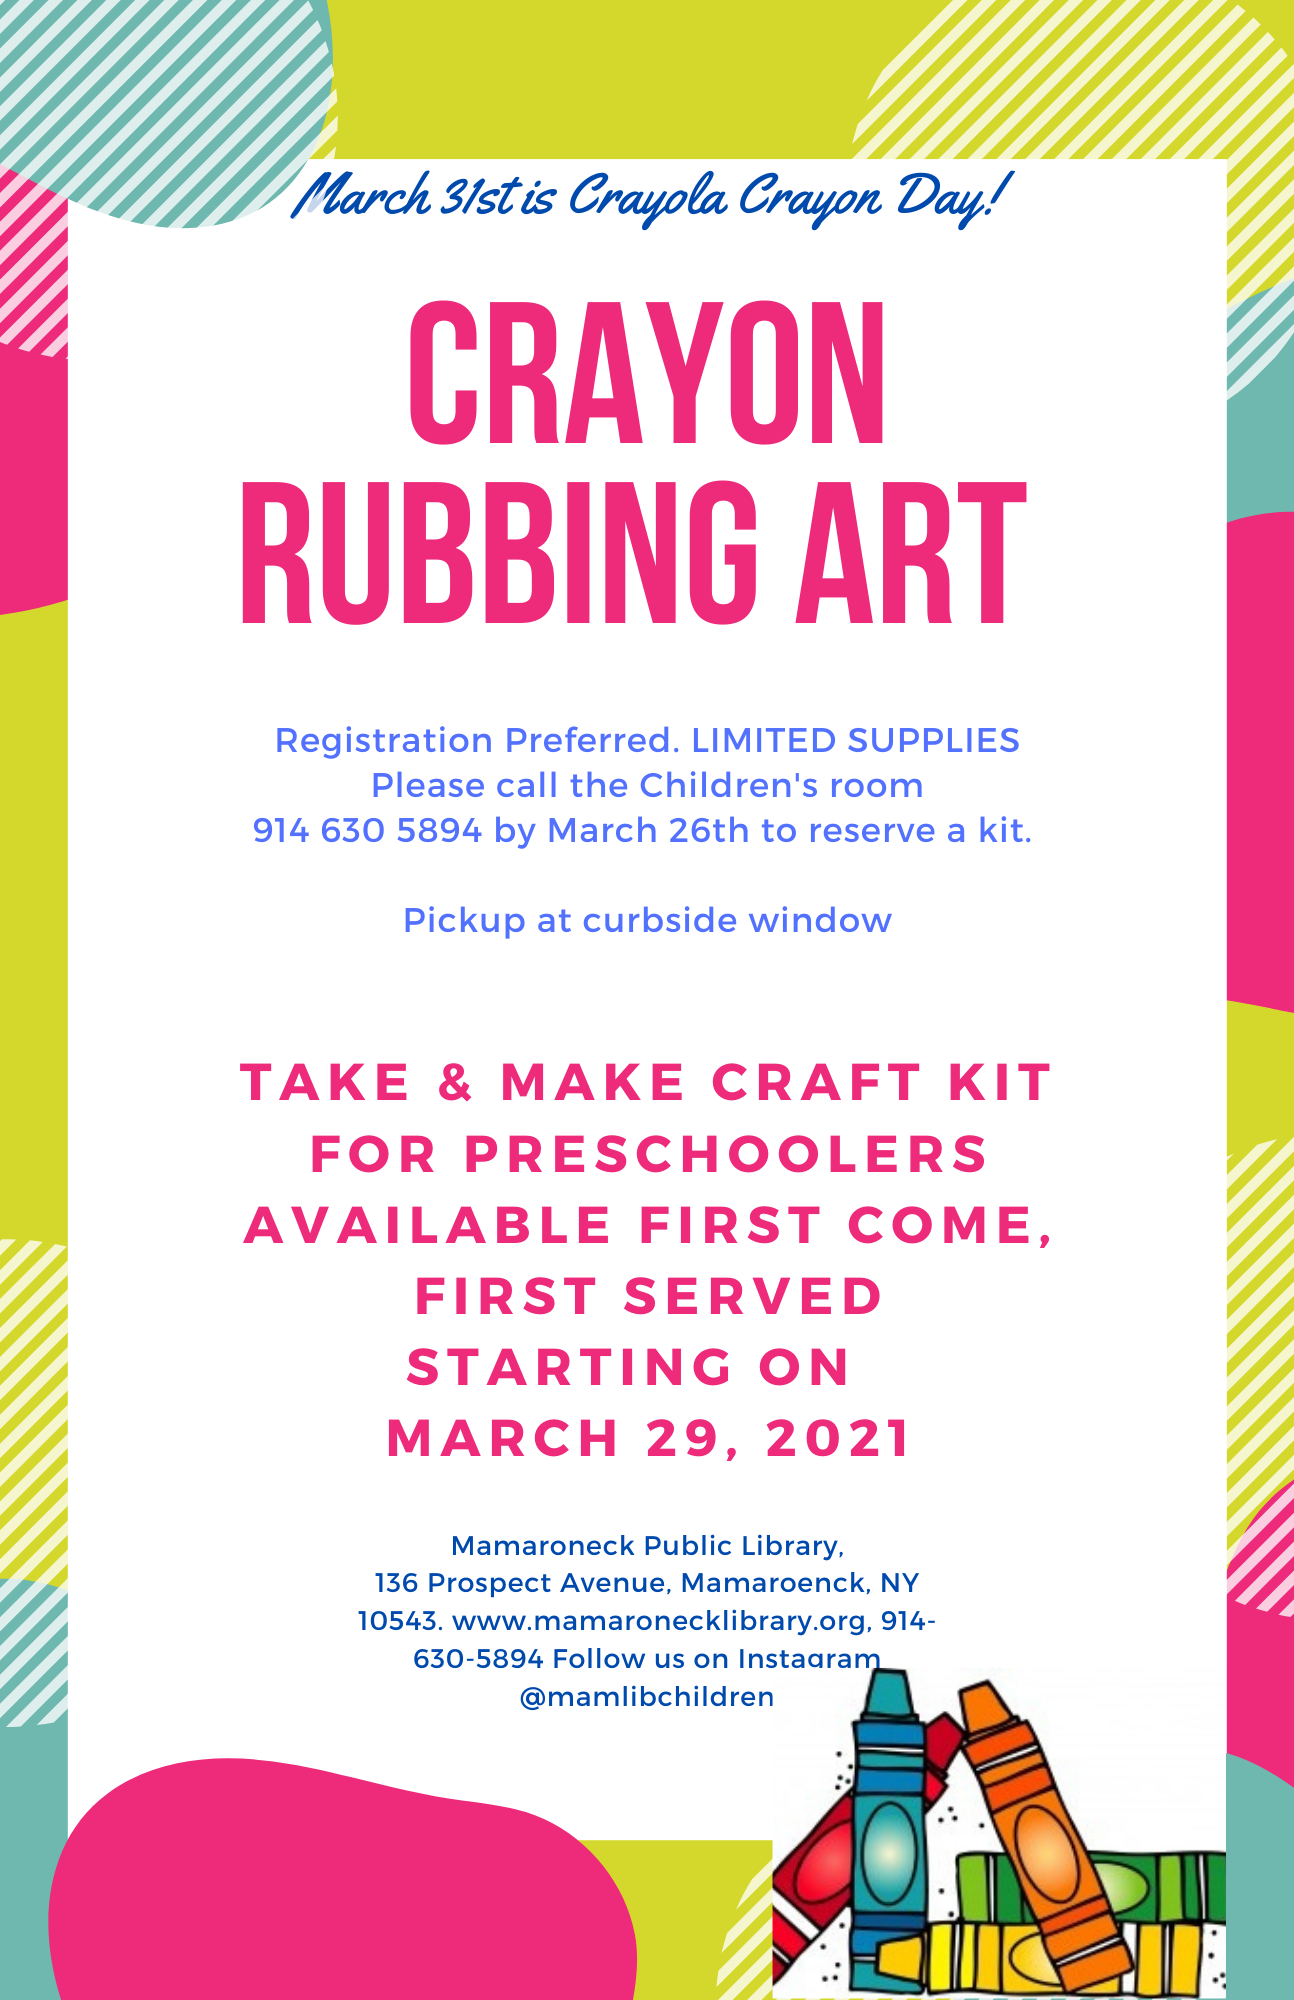 Crayon Rubbing Art - Take & Make Kit for Pre-Schoolers